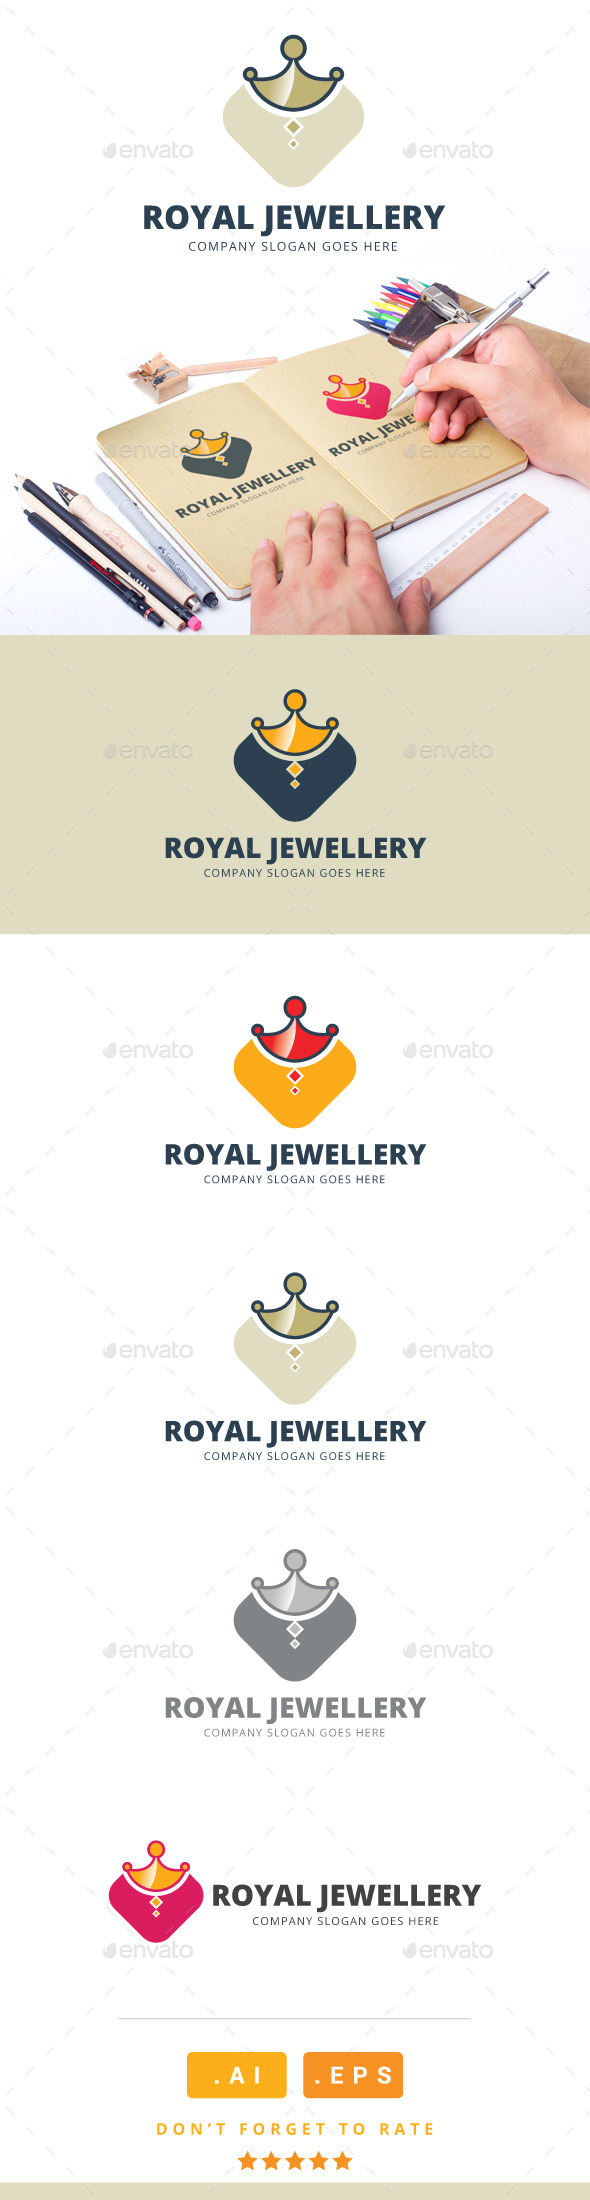 GraphicRiver Royal Jewellery Logo 11170503